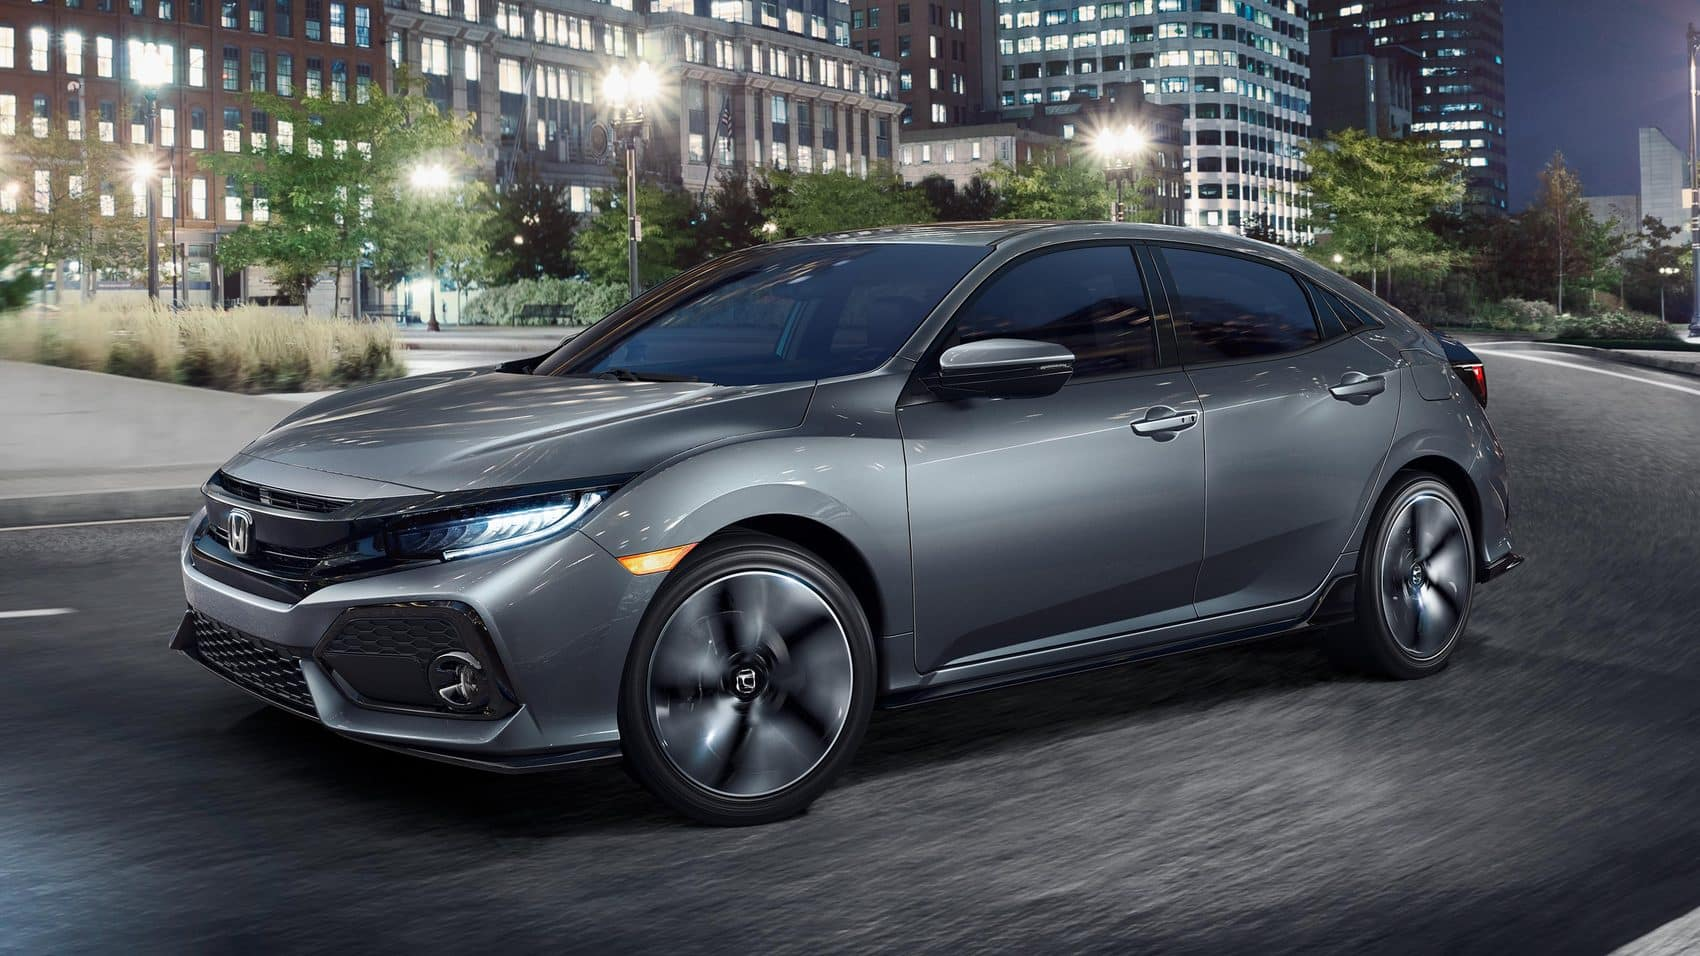 2019 Honda Civic Hatchback Performance